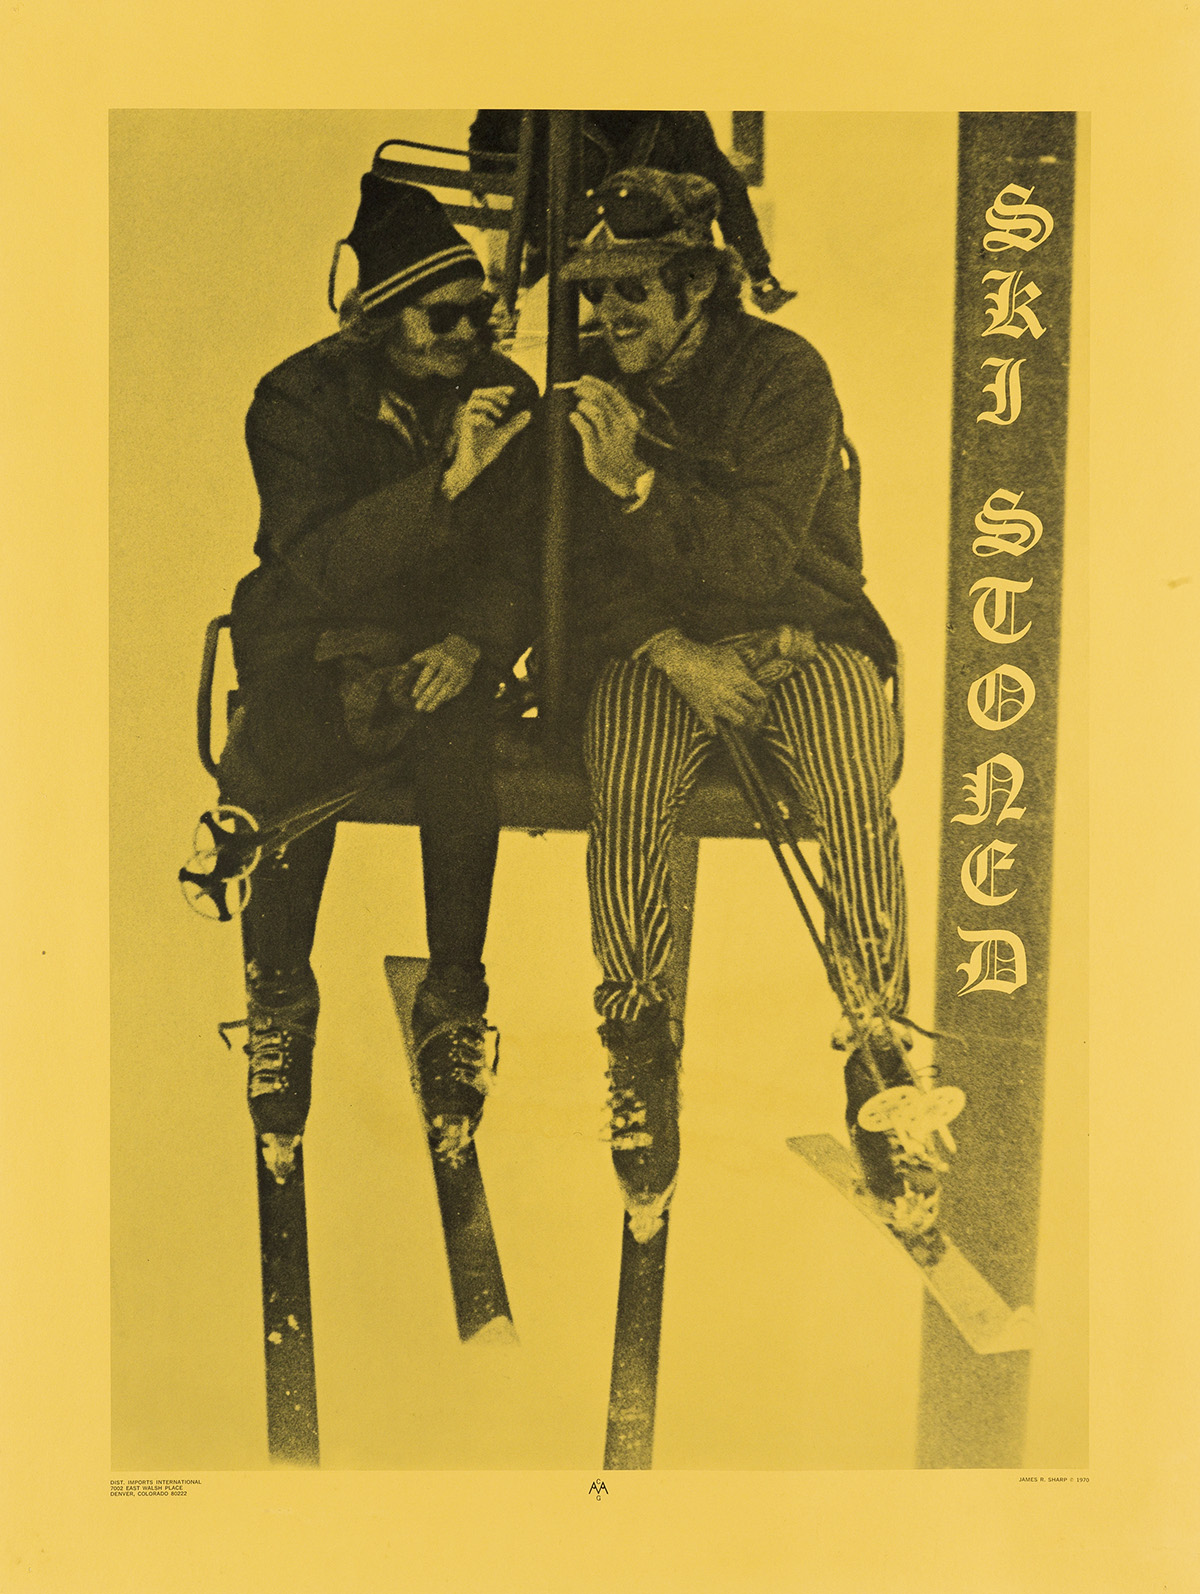 JAMES-R-SHARP-(DATES-UNKNOWN)-SKI-STONED-1970-28x21-inches-7